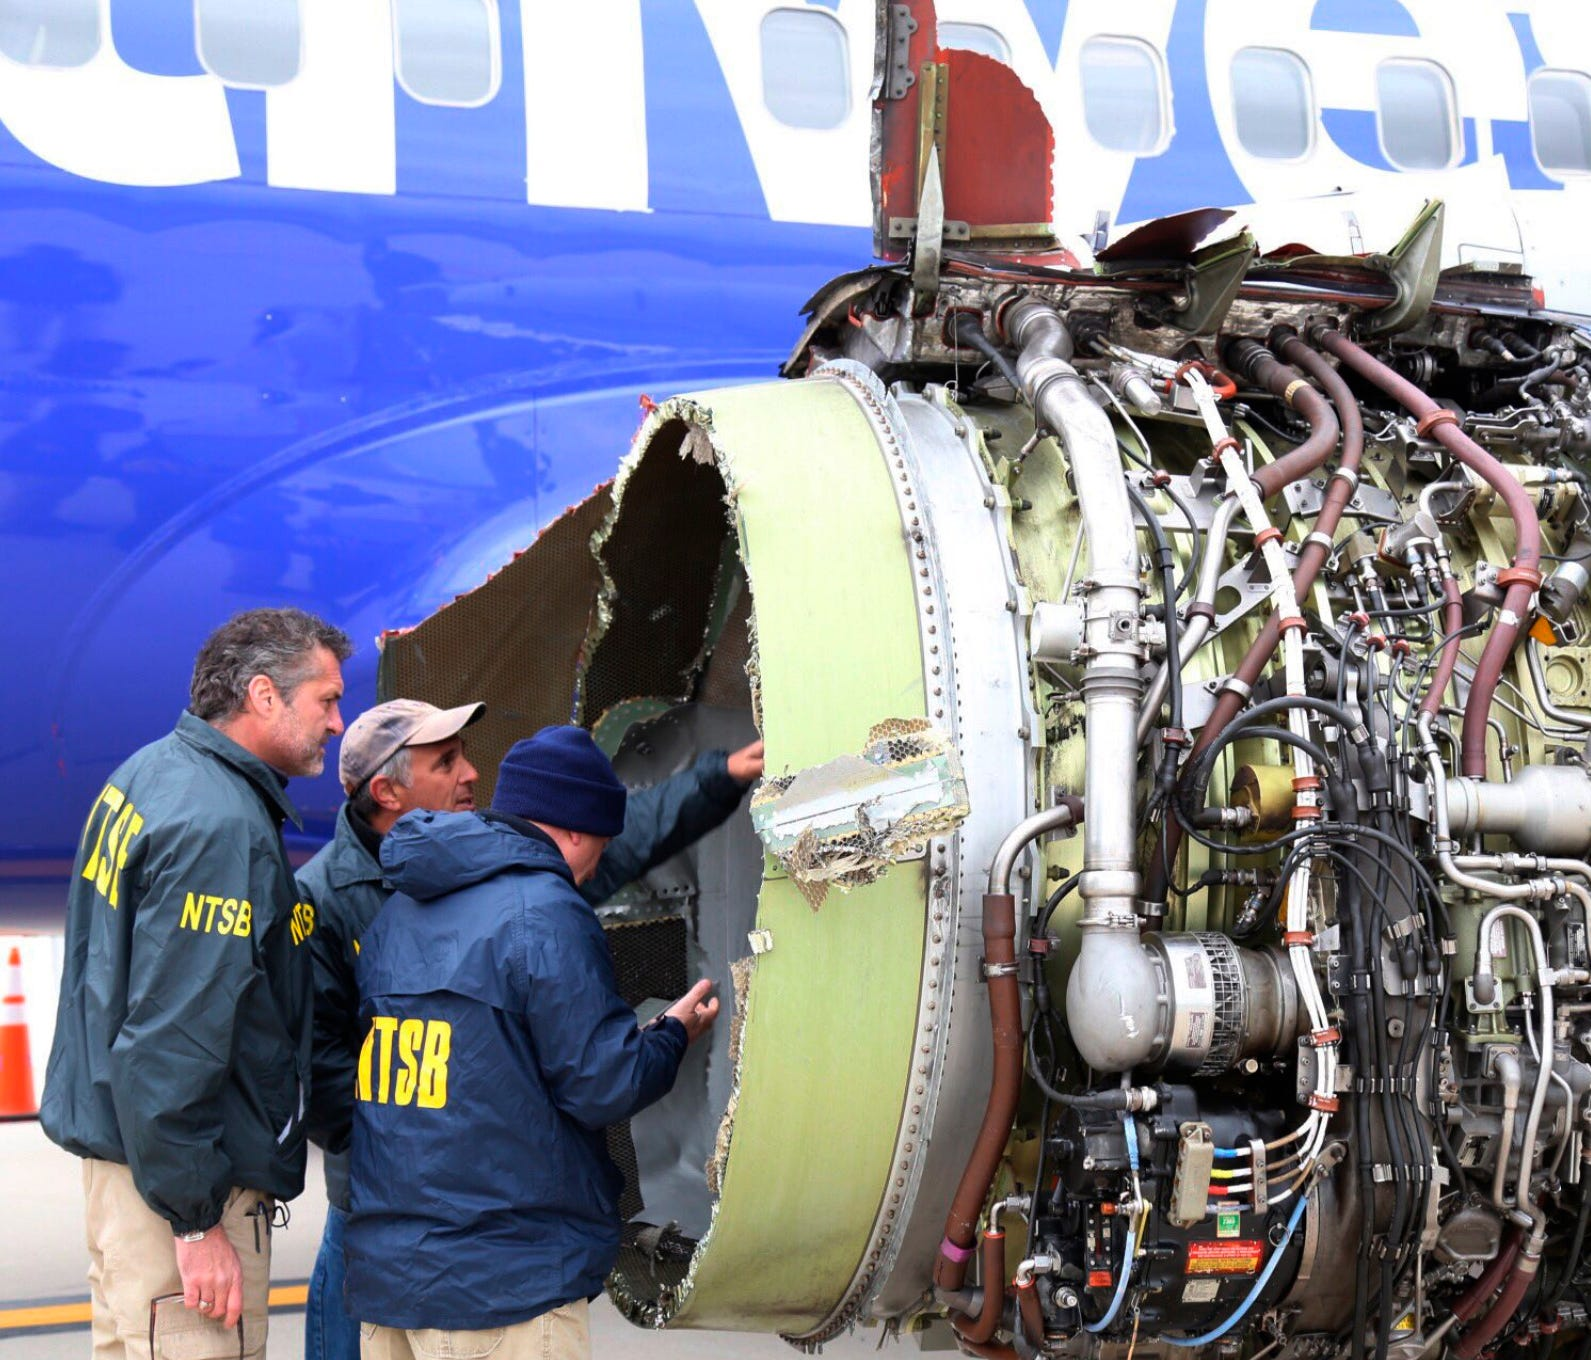 A National Transportation Safety Board investigator examines damage to the engine of Southwest Airlines Flight 1380 that made an emergency landing at Philadelphia International Airport in Philadelphia. A preliminary examination of the blown jet engin